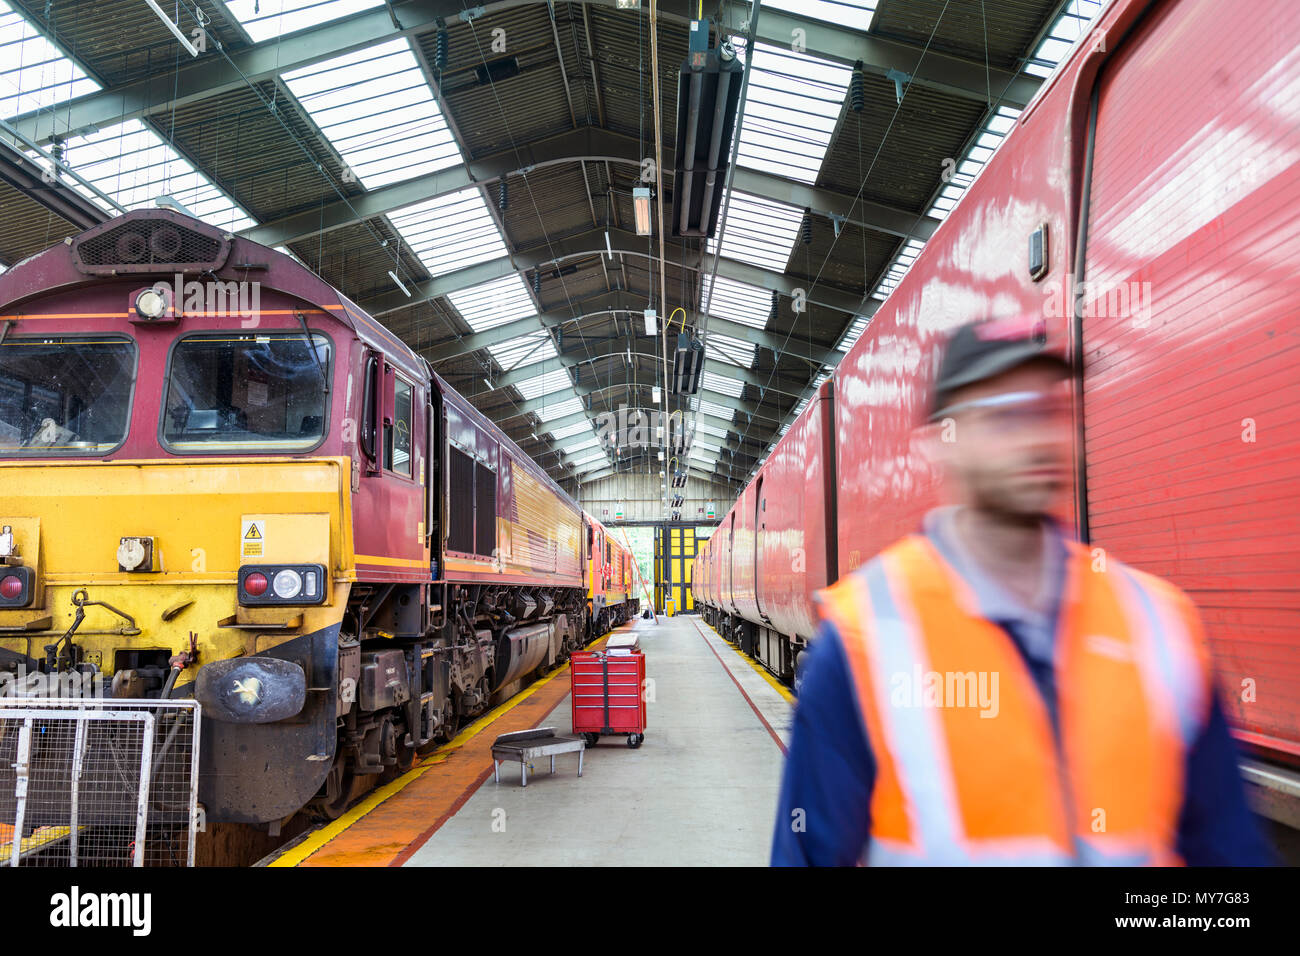 Engineer walking on platform in train engineering factory - Stock Image